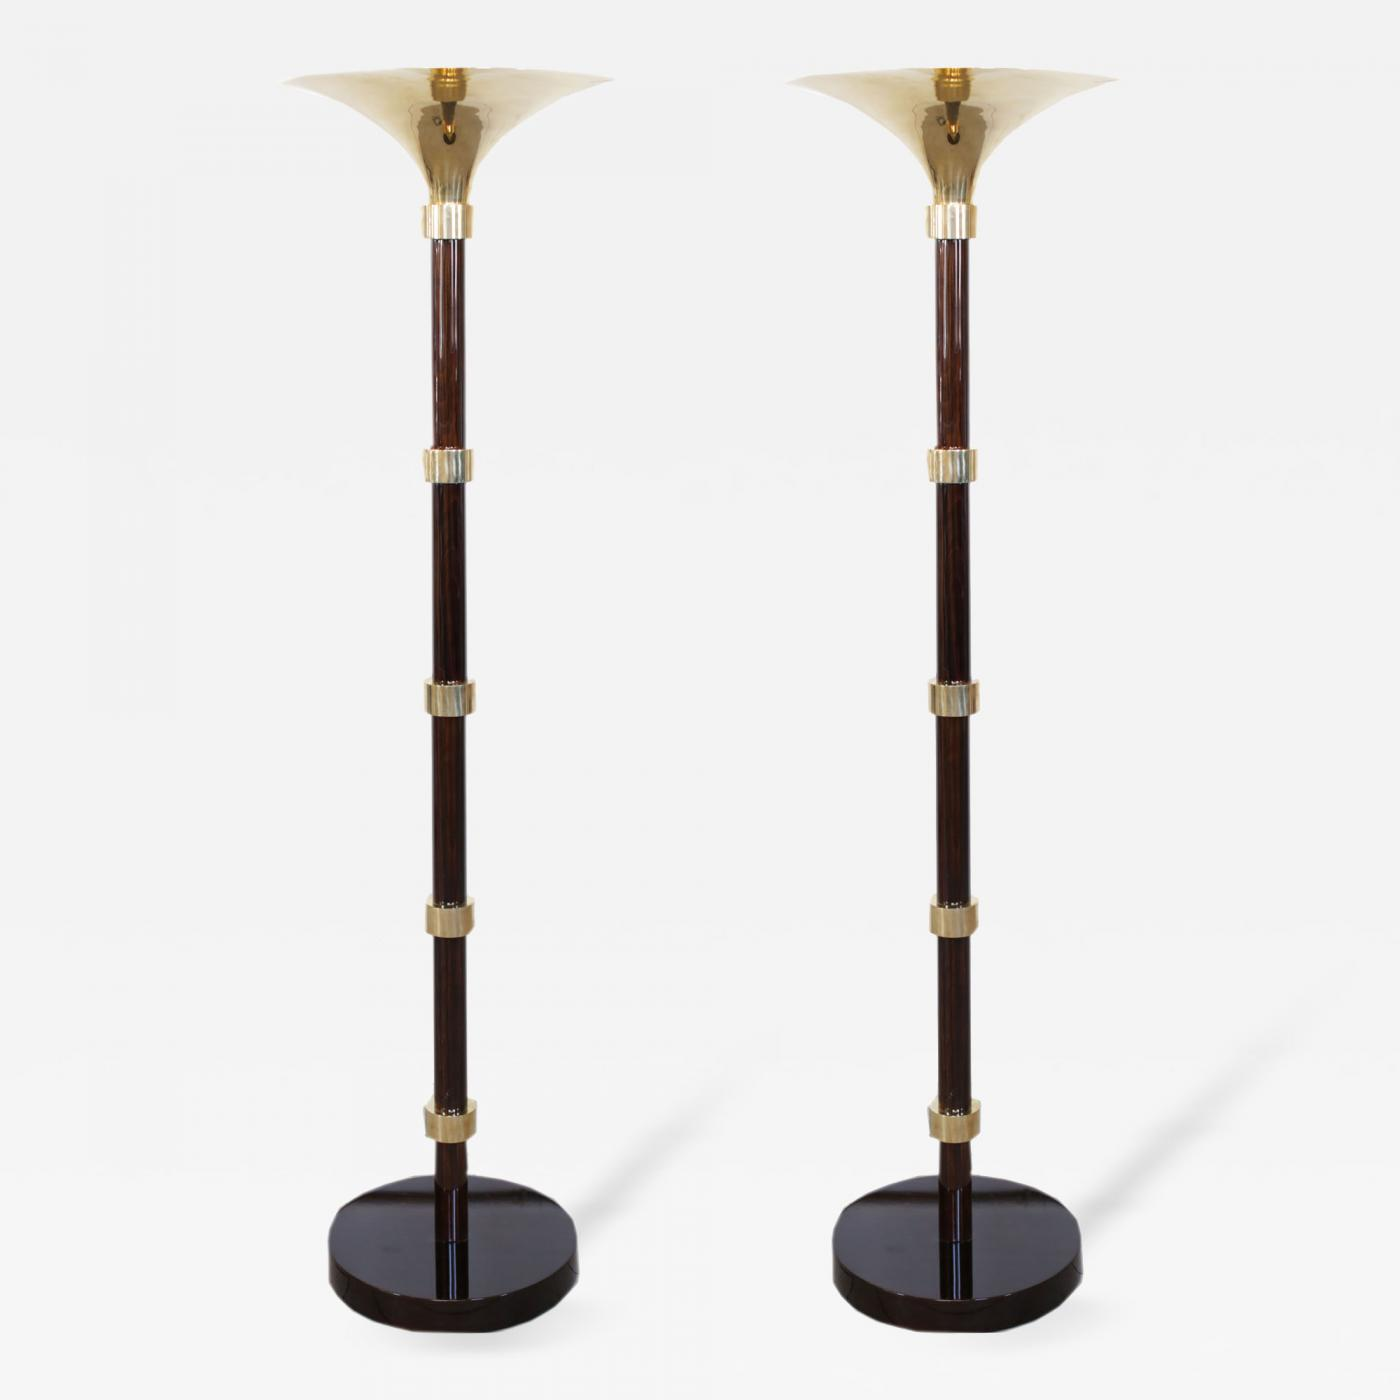 Pair of french art deco torchieres floor lamps circa 1930s for 1930 floor lamps